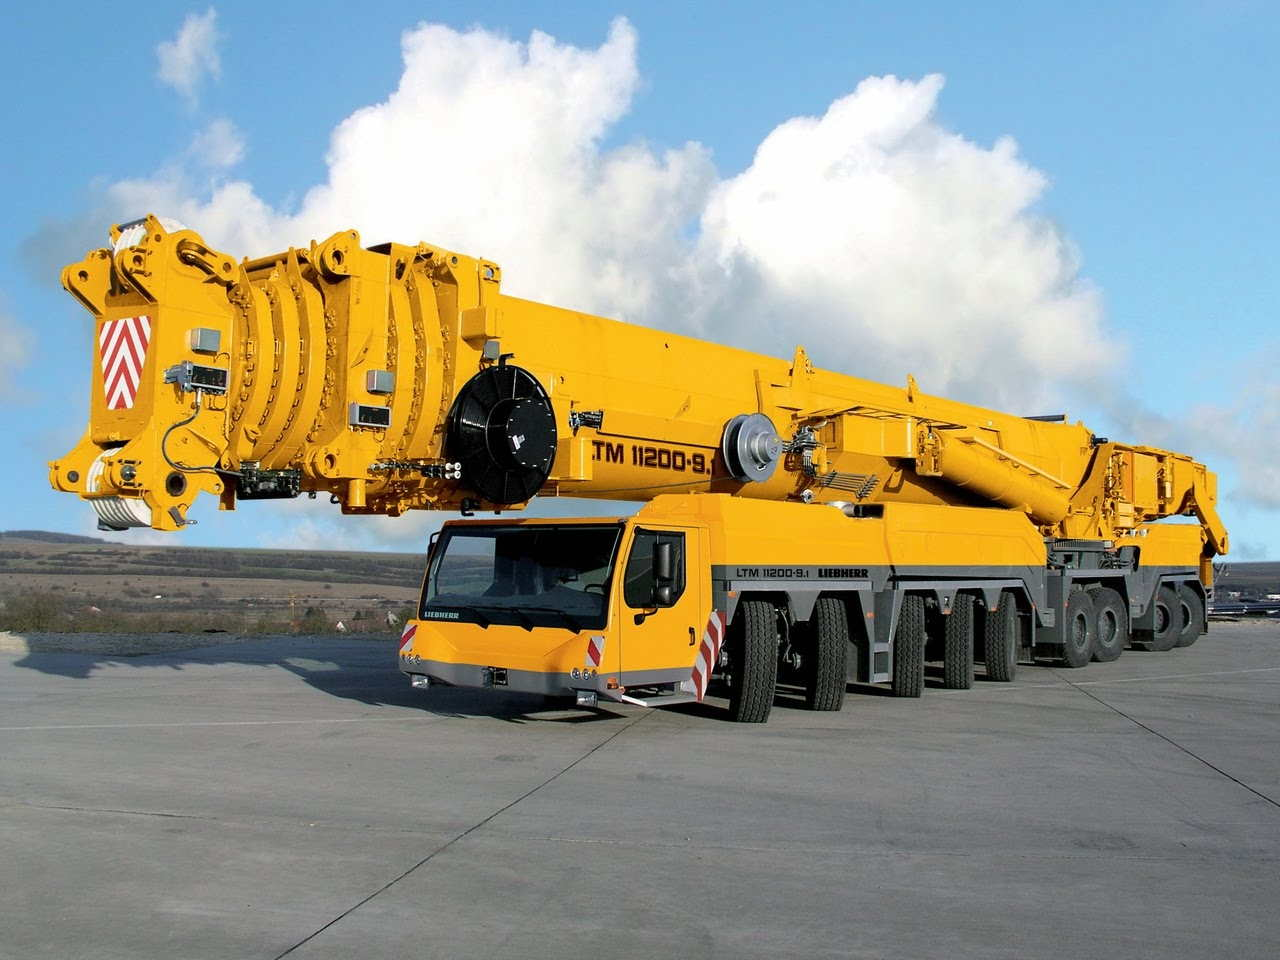 Largest Truck Crane Biggest Truck Crane Longest Crane Top 10 Most Amazing Crane in the World